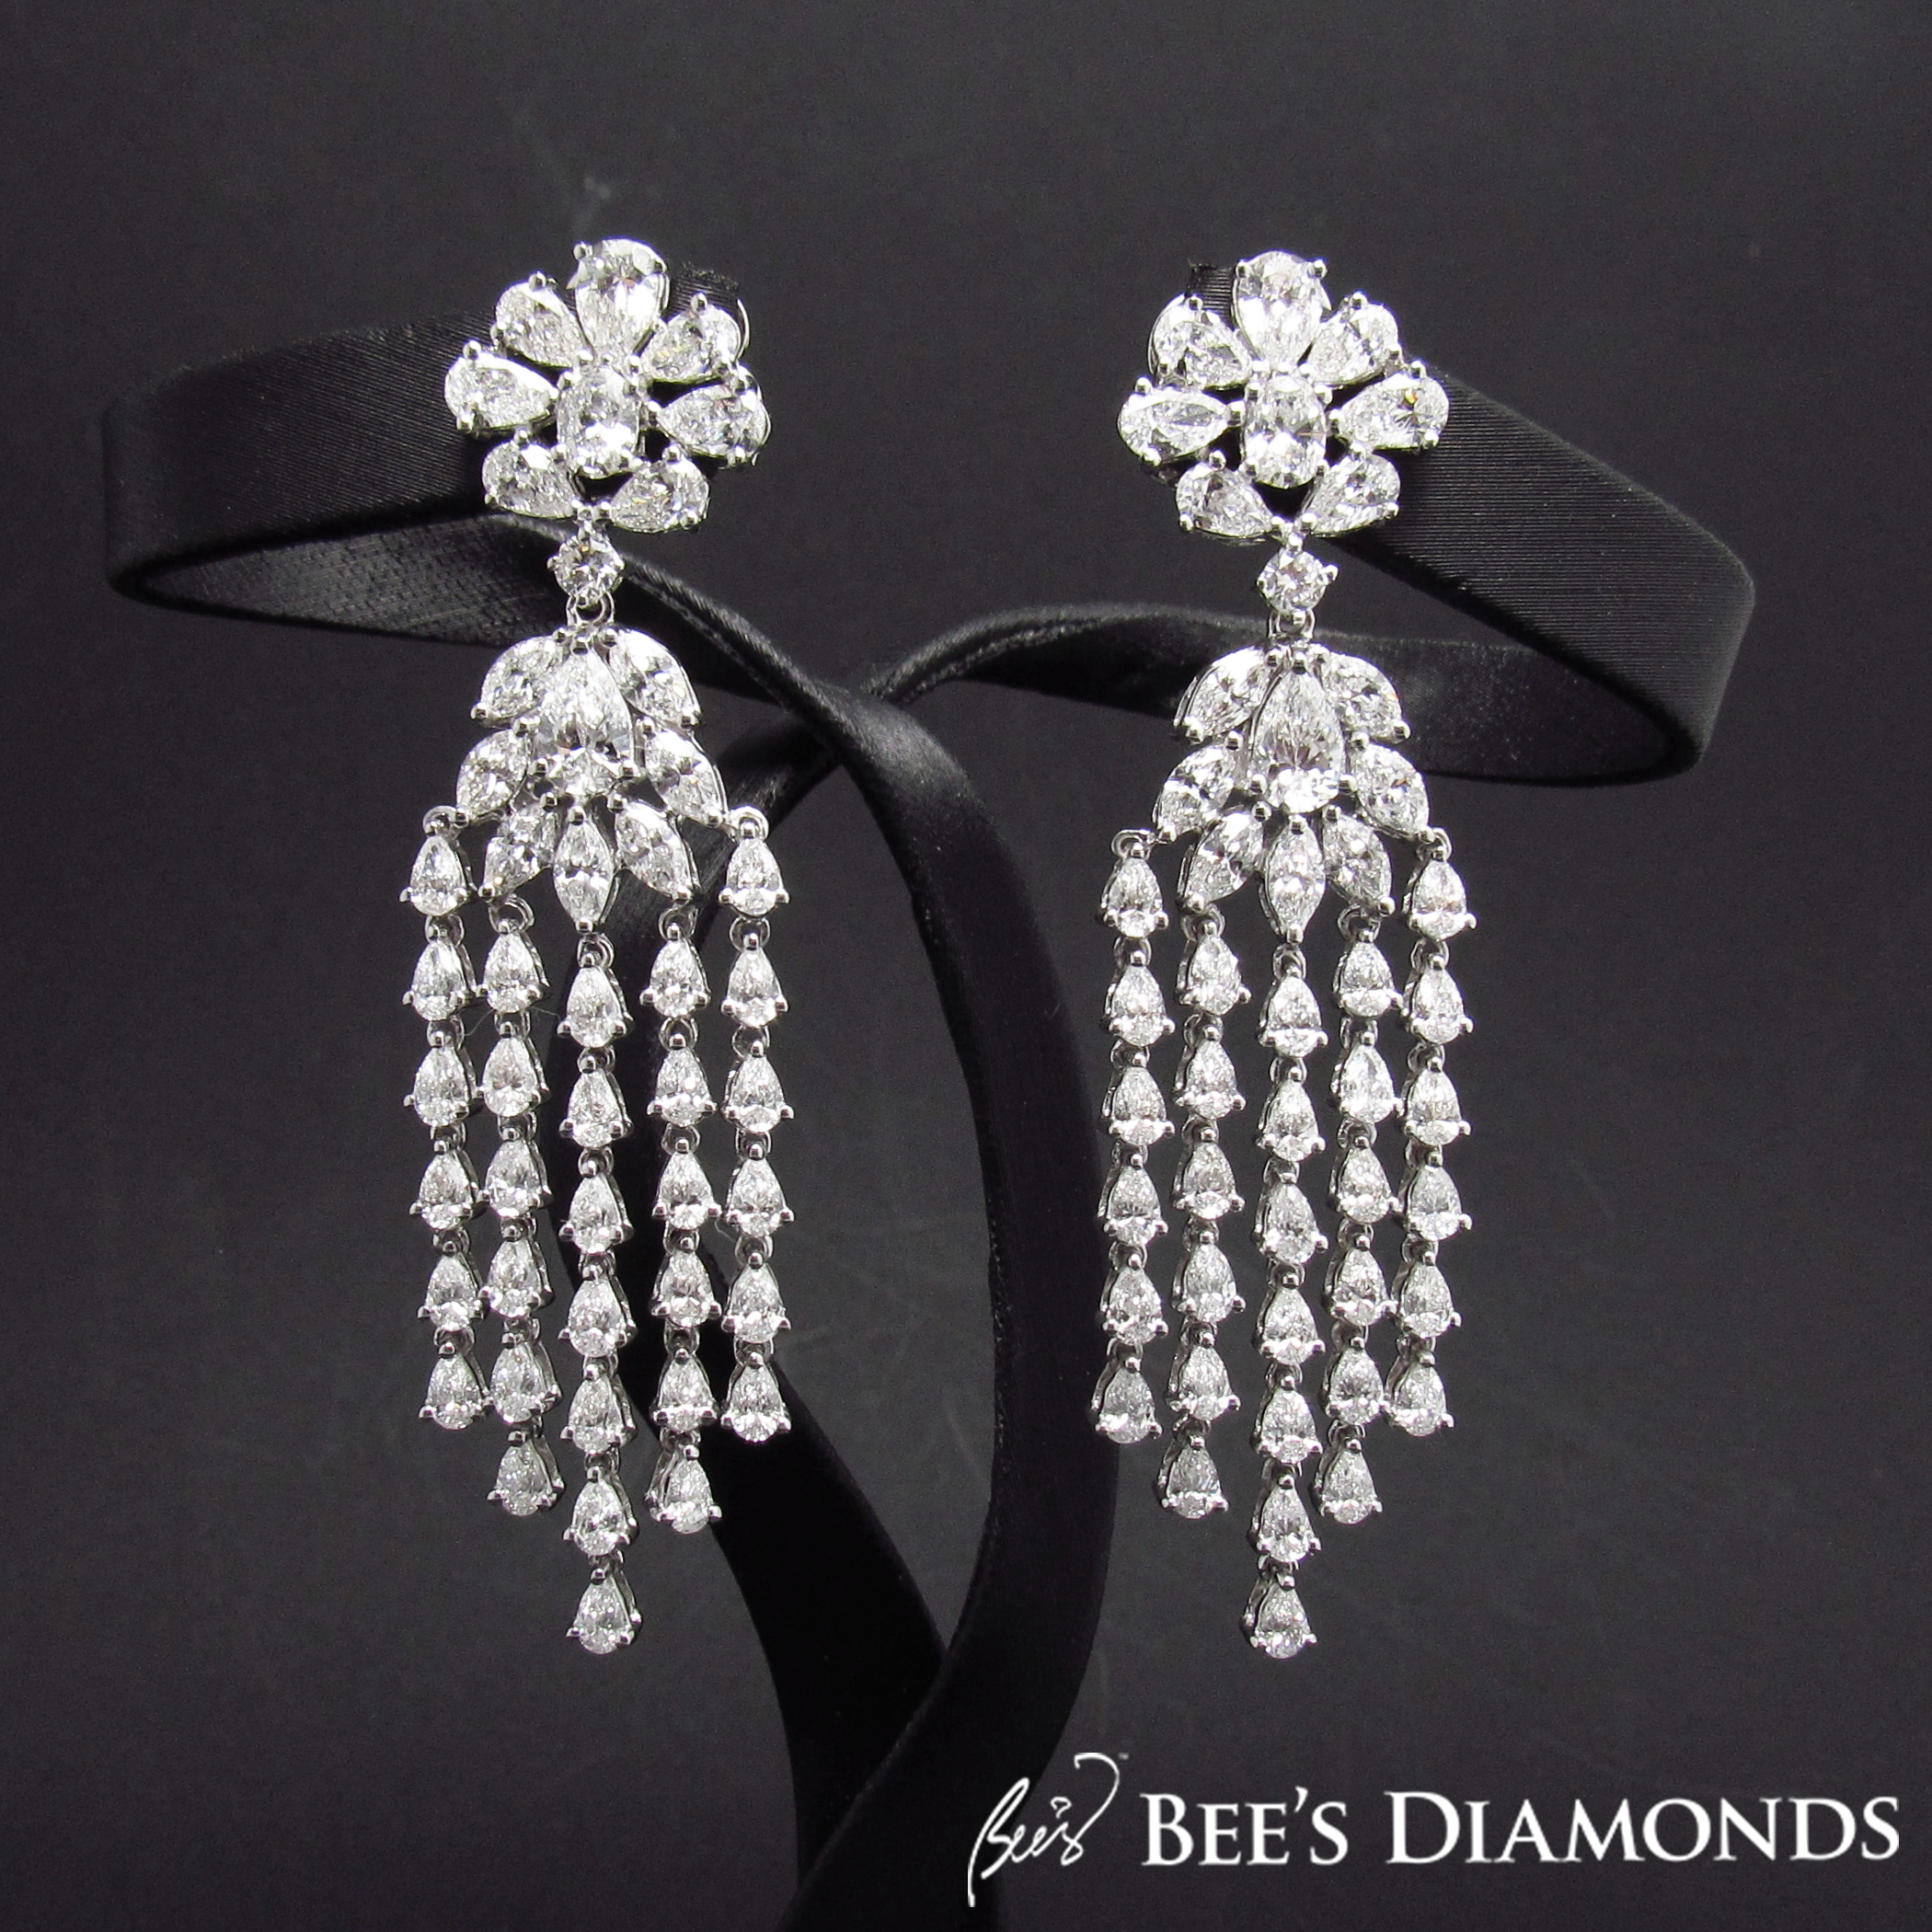 Glamourous diamond dangling earrings | Bee's Diamonds